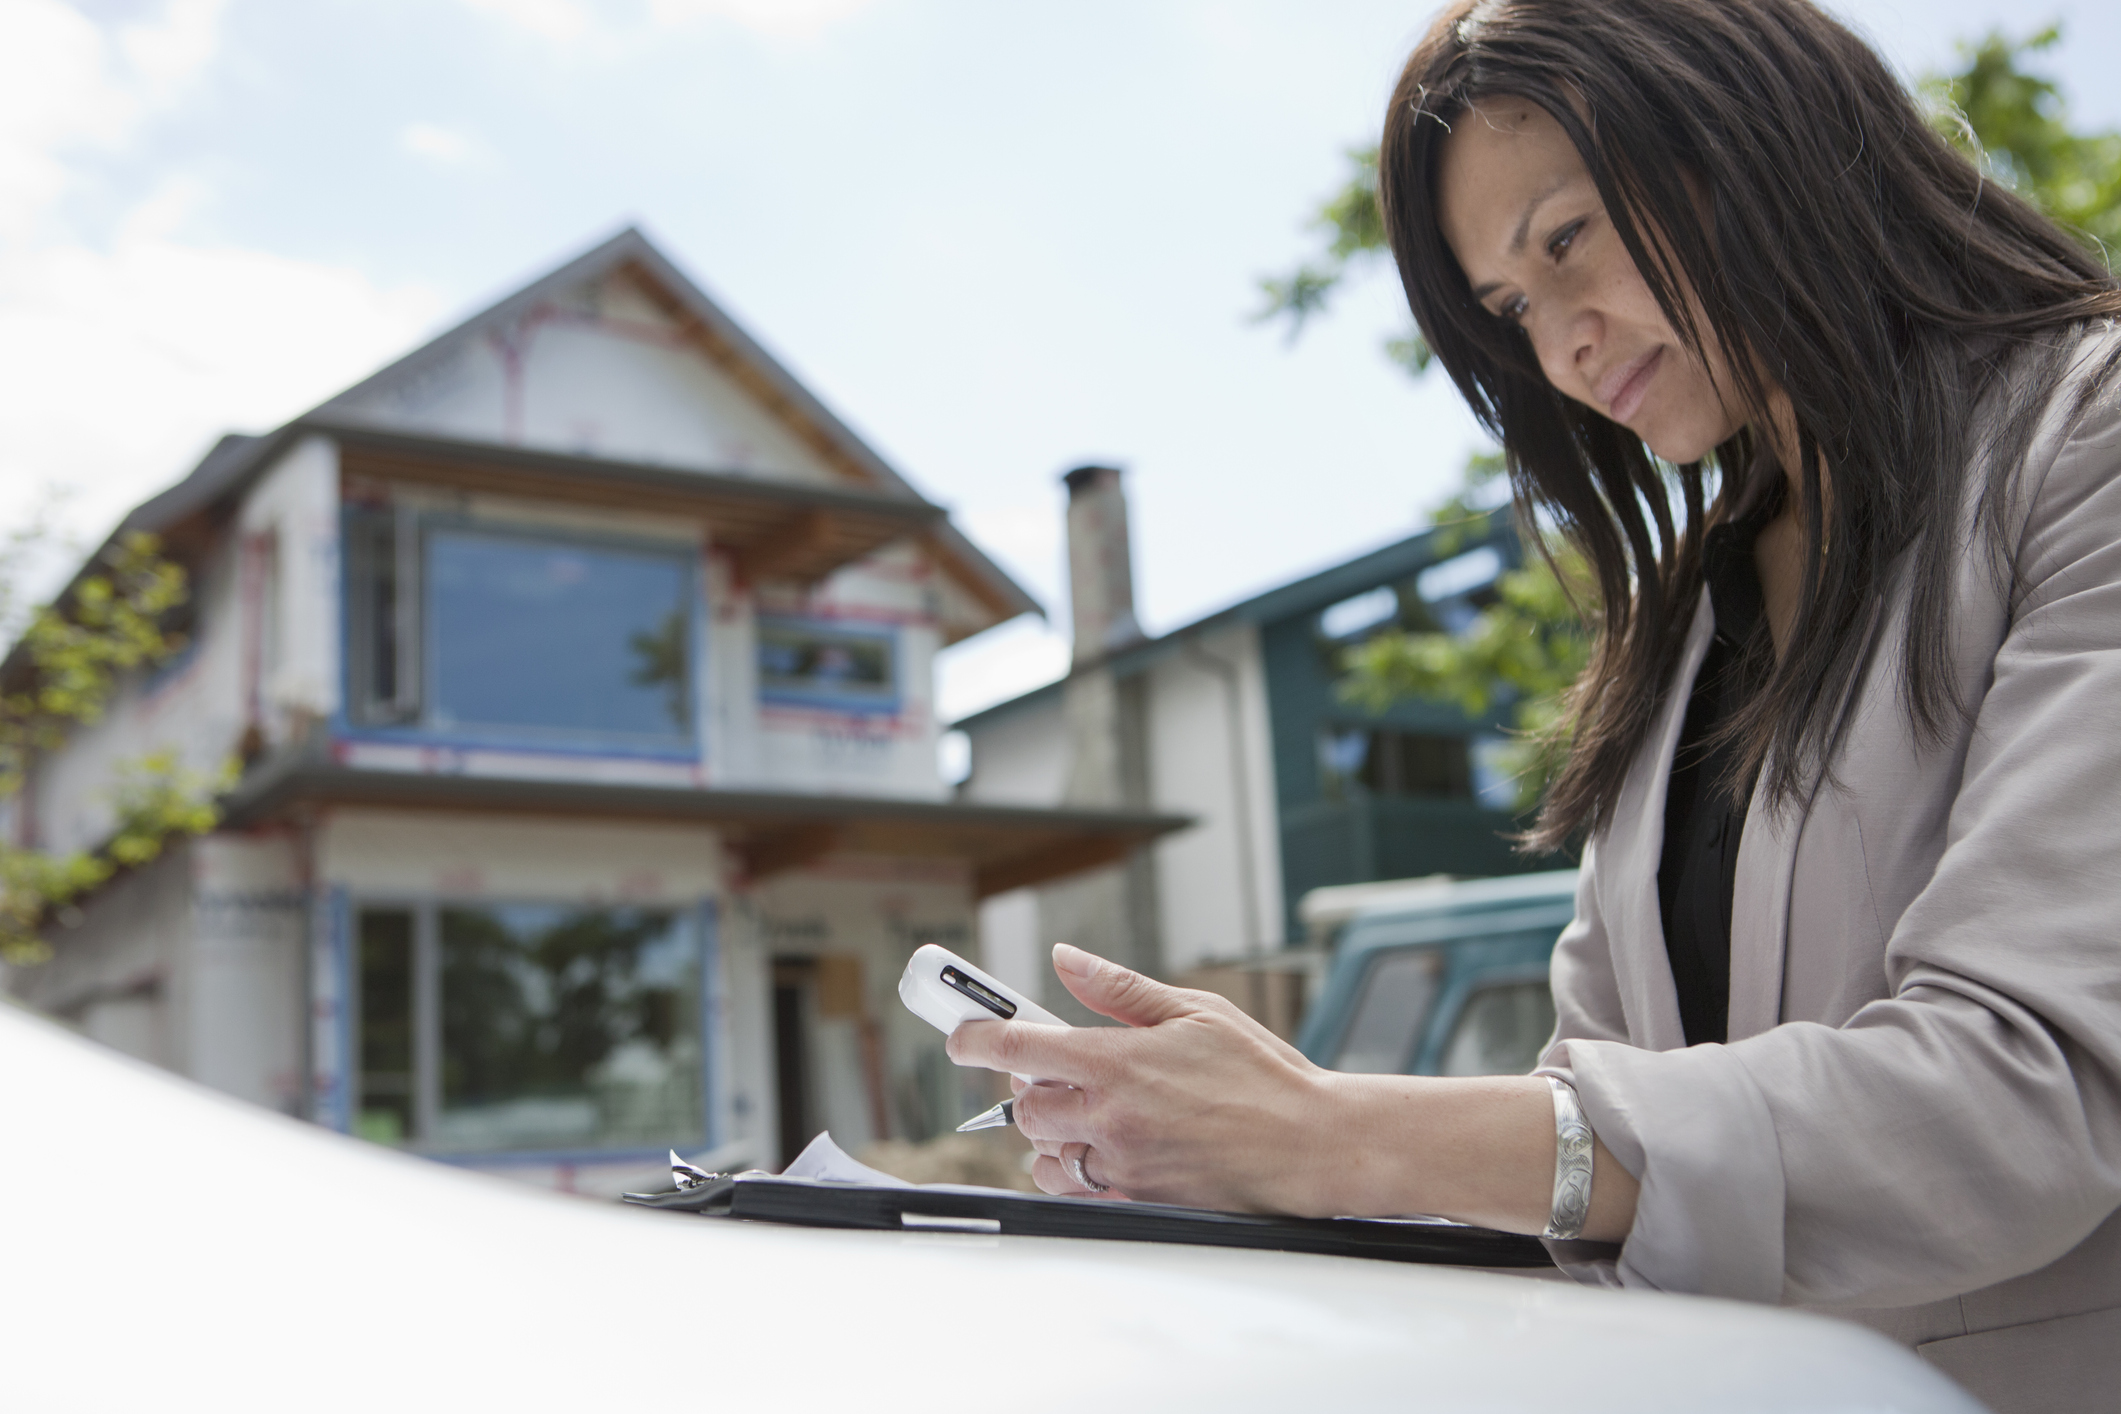 real estate agent texting on phone outside of home